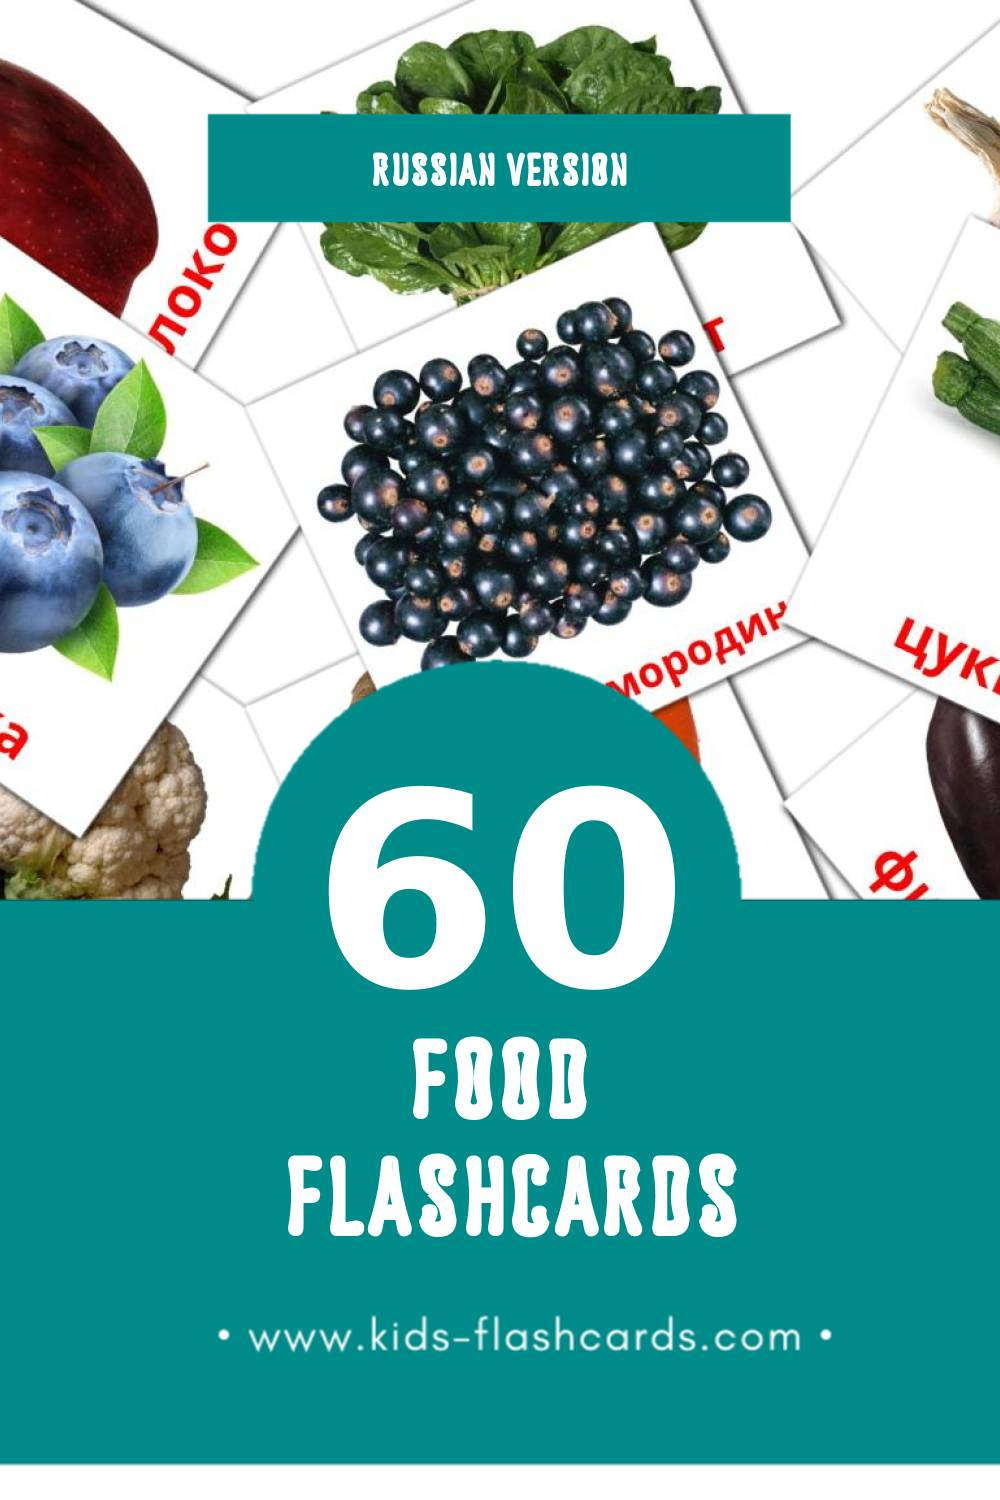 Visual Еда Flashcards for Toddlers (60 cards in Russian)